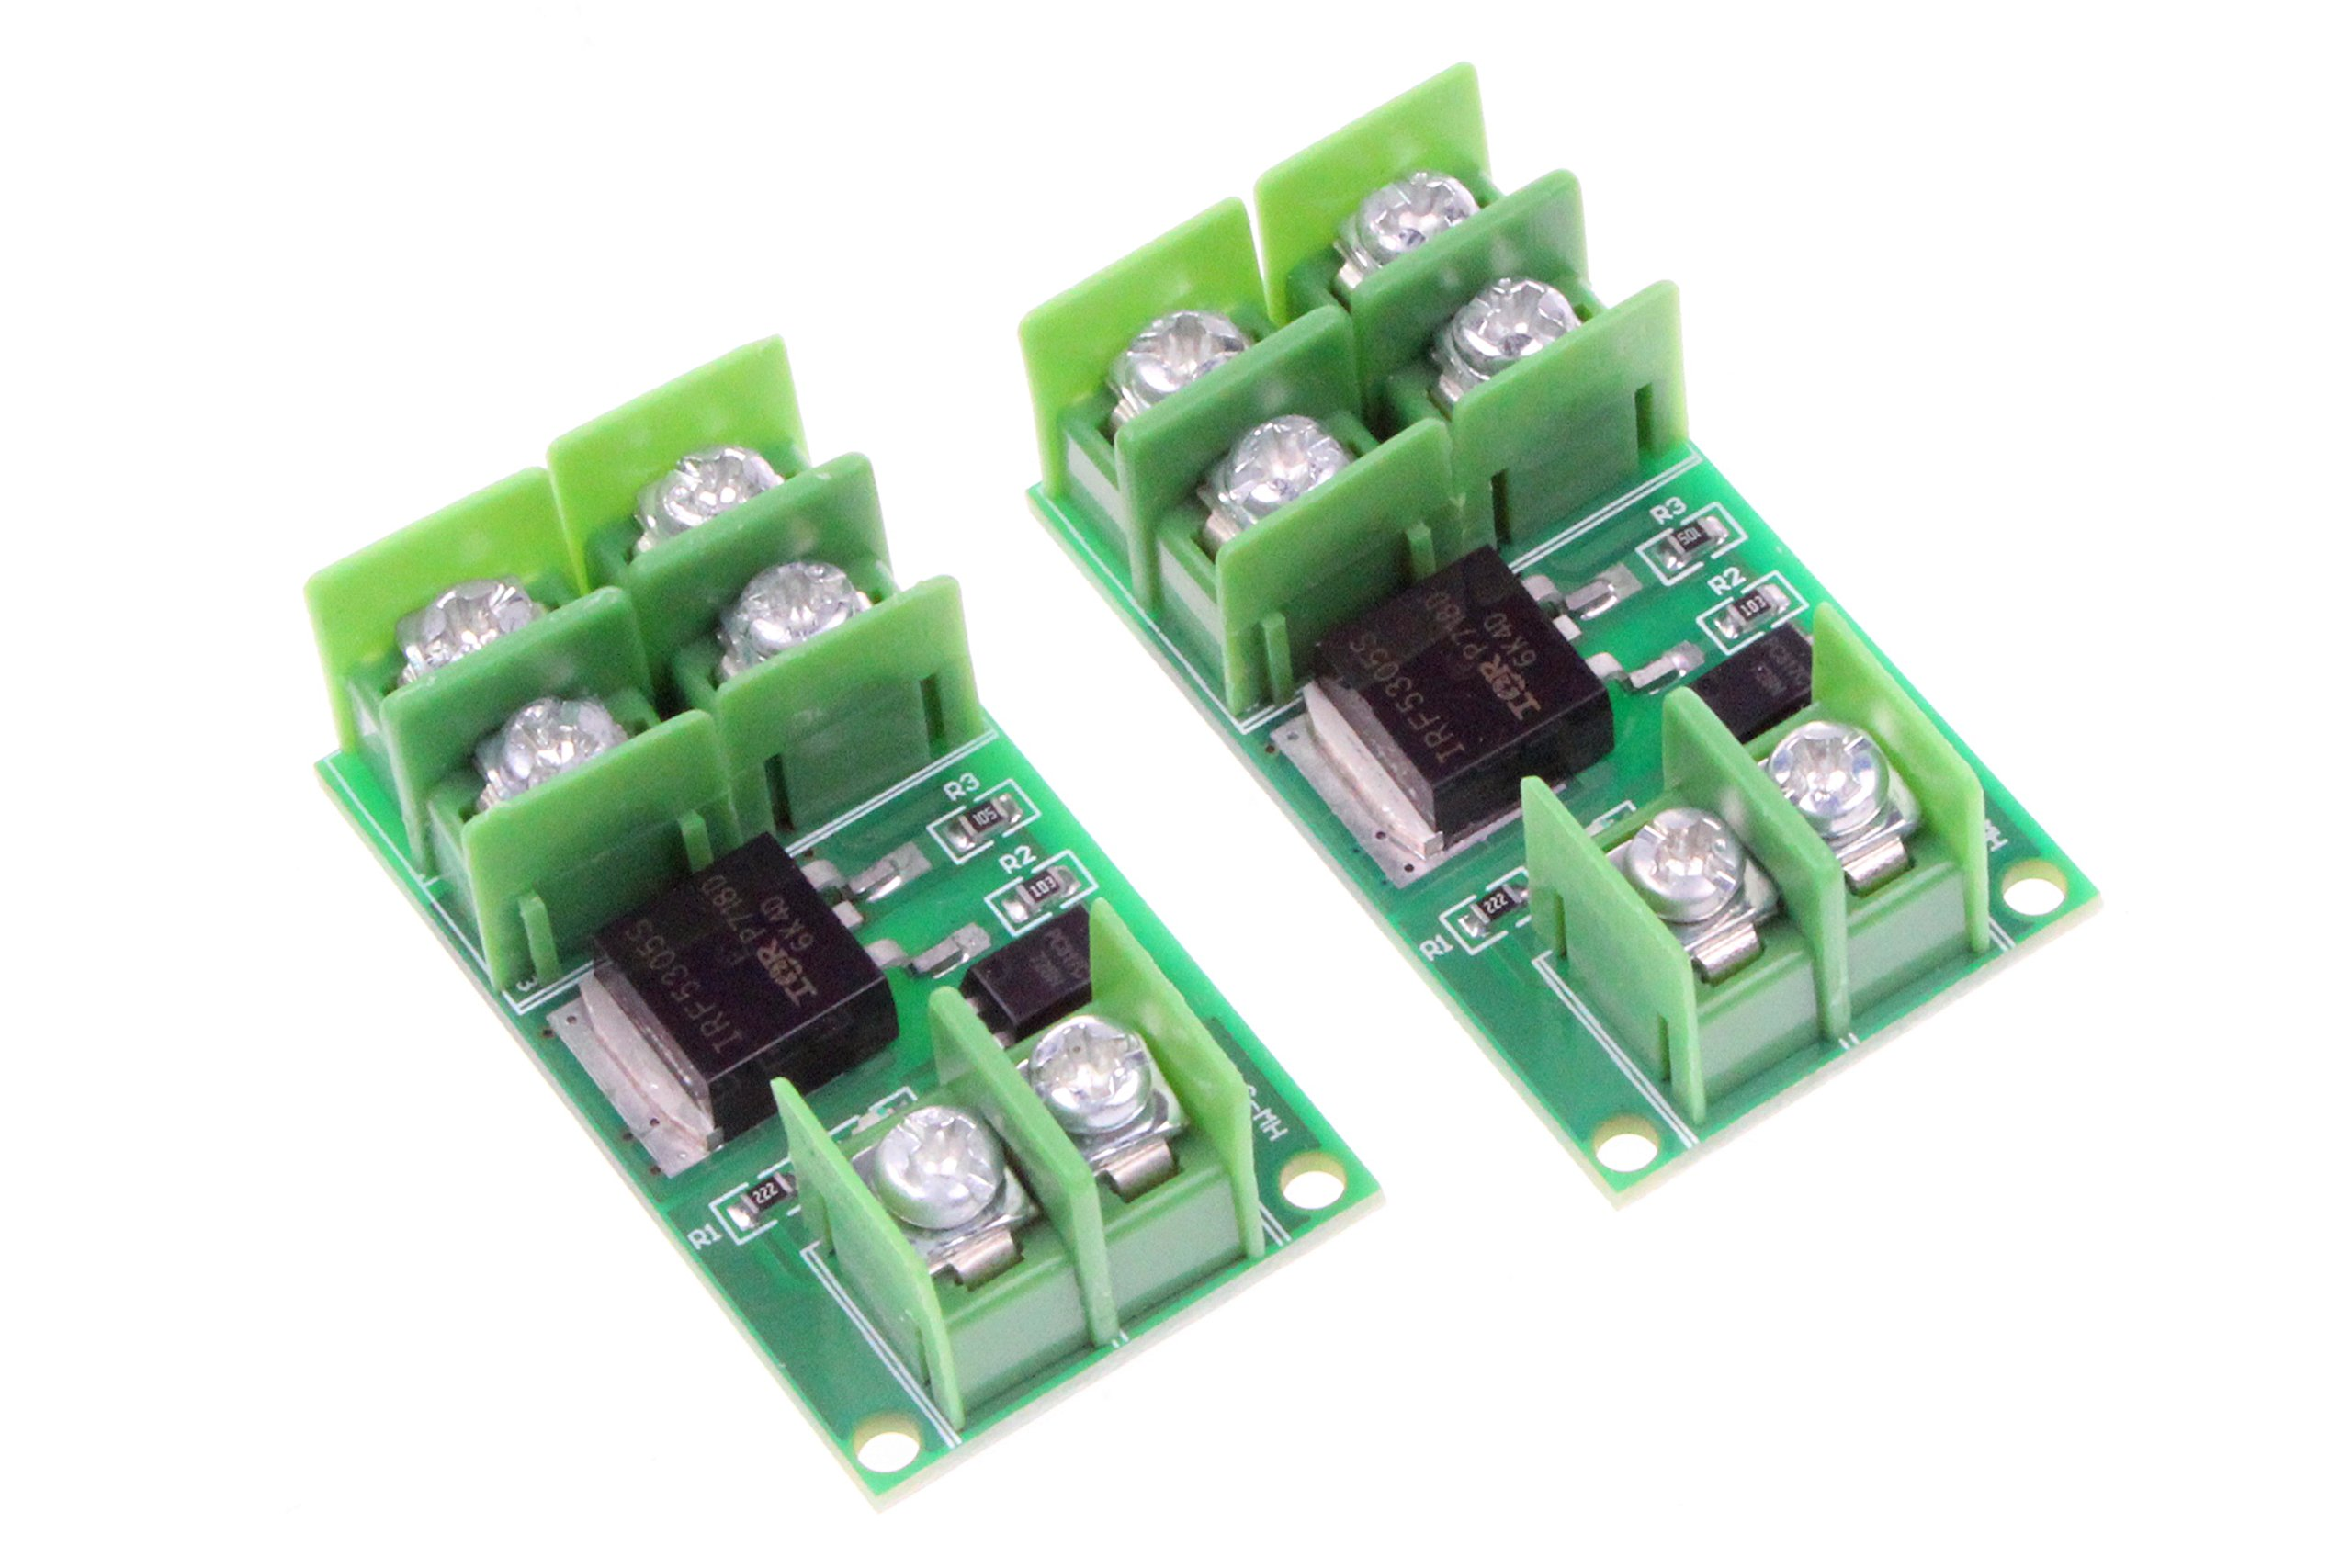 Electronic Switch Control Board Isolation MOS FET Pulse Trigger Switch Control Module DC Control -DC 5-36V Input Controlled voltage - 2Pcs by NOYITO